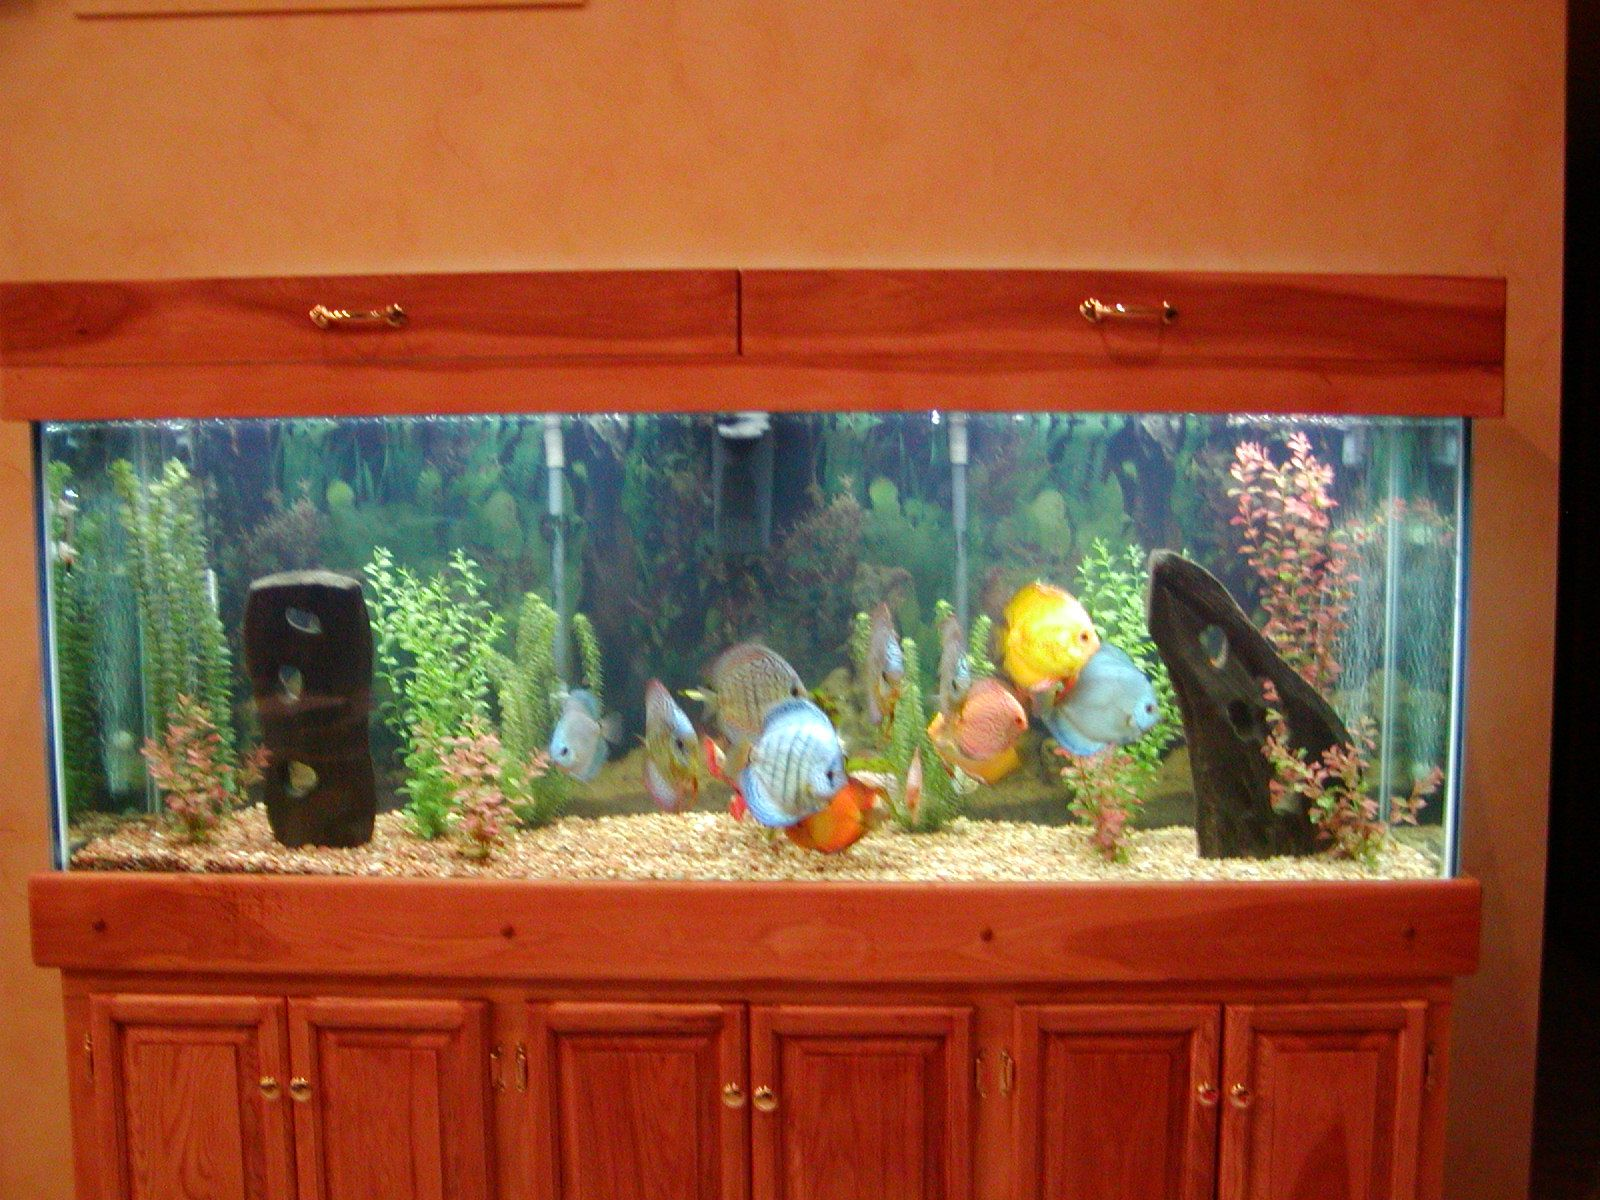 Freshwater aquarium fish by size - Freshwater Tropical Discus Fish Tank